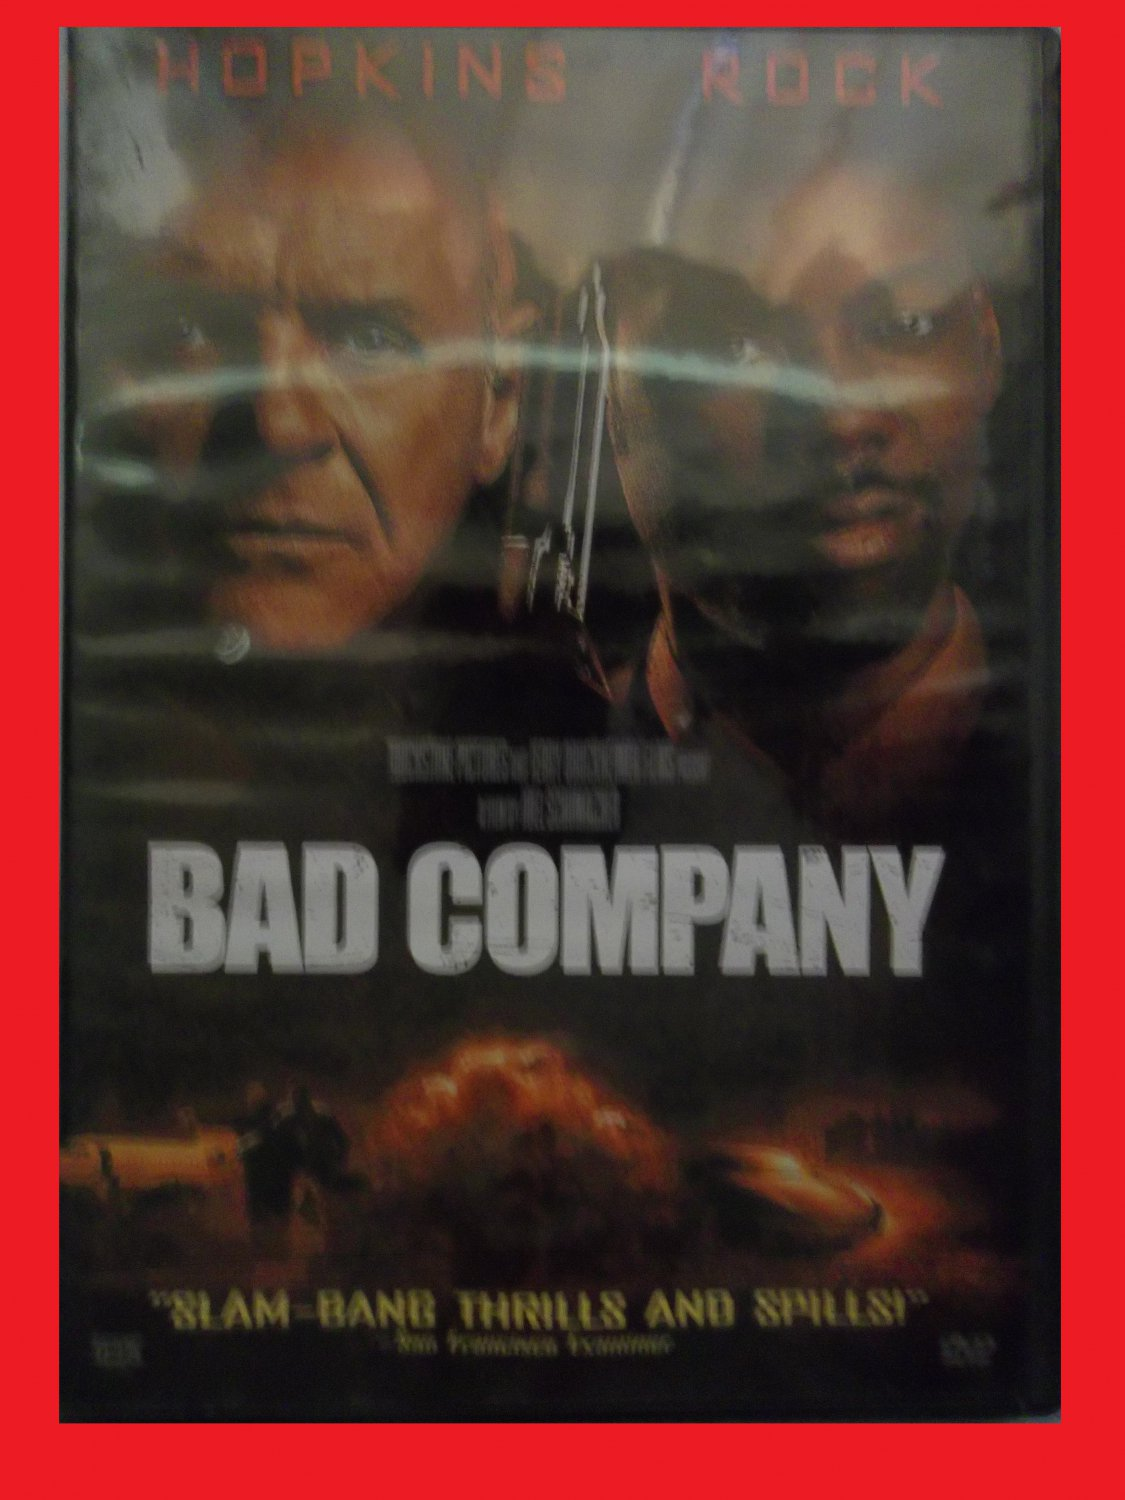 BAD COMPANY (FREE DVD & FAST SHIPPING) ANTHONY HOPKINS (SPY ACTION/THRILLER)